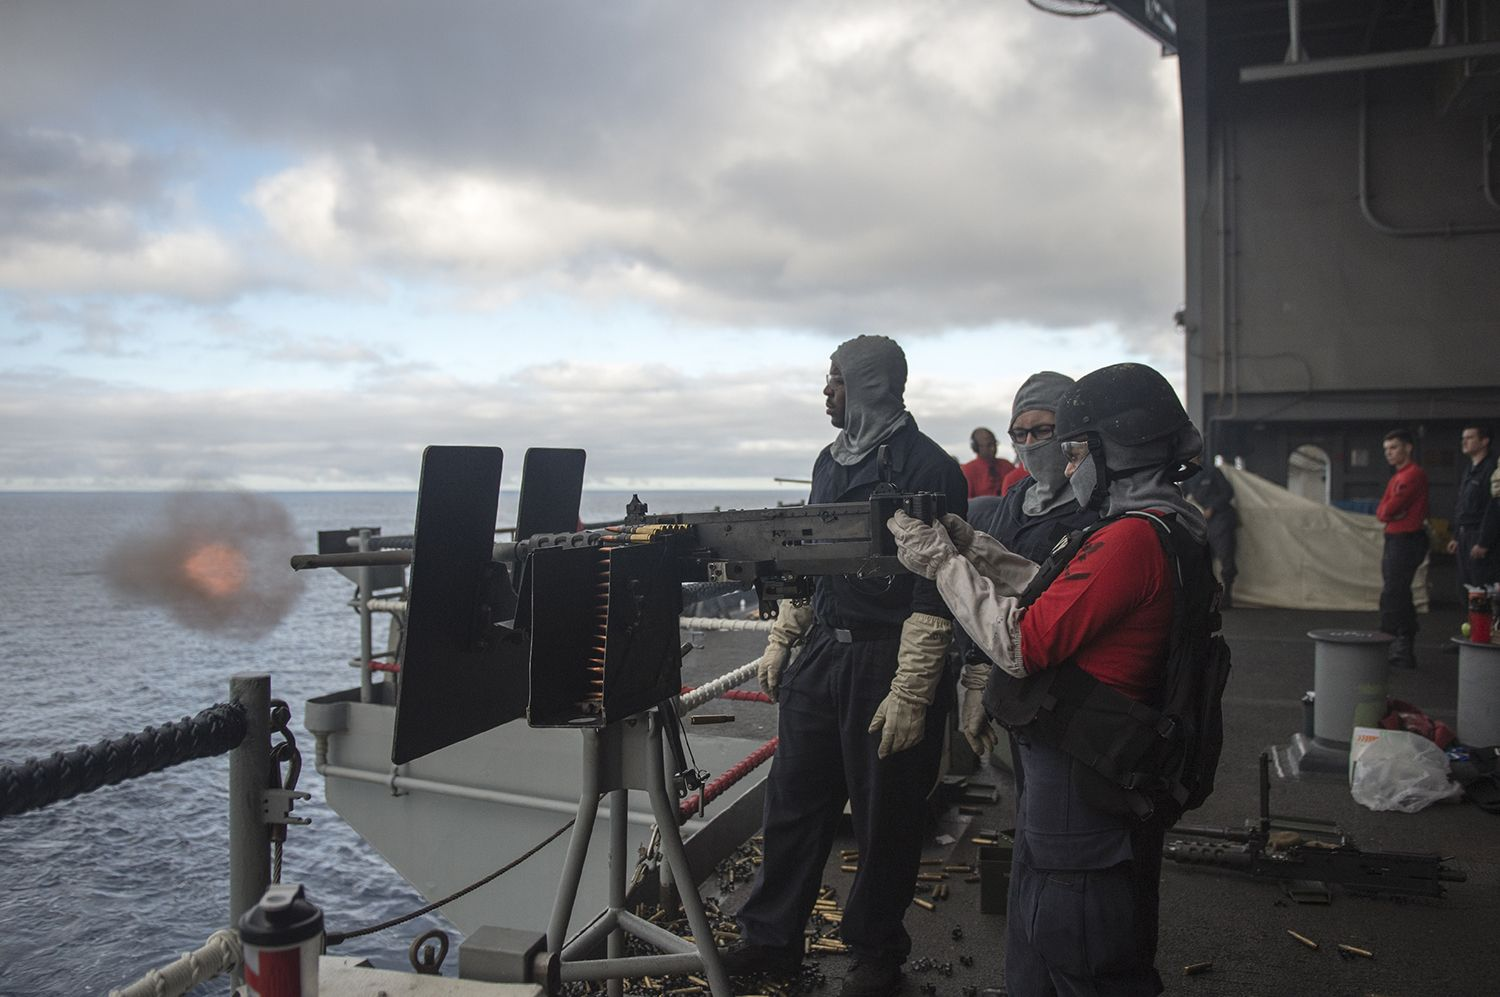 PACIFIC OCEAN (Sept. 13, 2015) Sailors from weapons department participate in a live-fire exercise aboard the aircraft carrier USS George Washington (CVN 73). George Washington is operating in Southern California waters, preparing to deploy around South America as a part of Southern Seas 2015. (U.S. Navy photo by Mass Communication Specialist Seaman Clemente A. Lynch/Released)